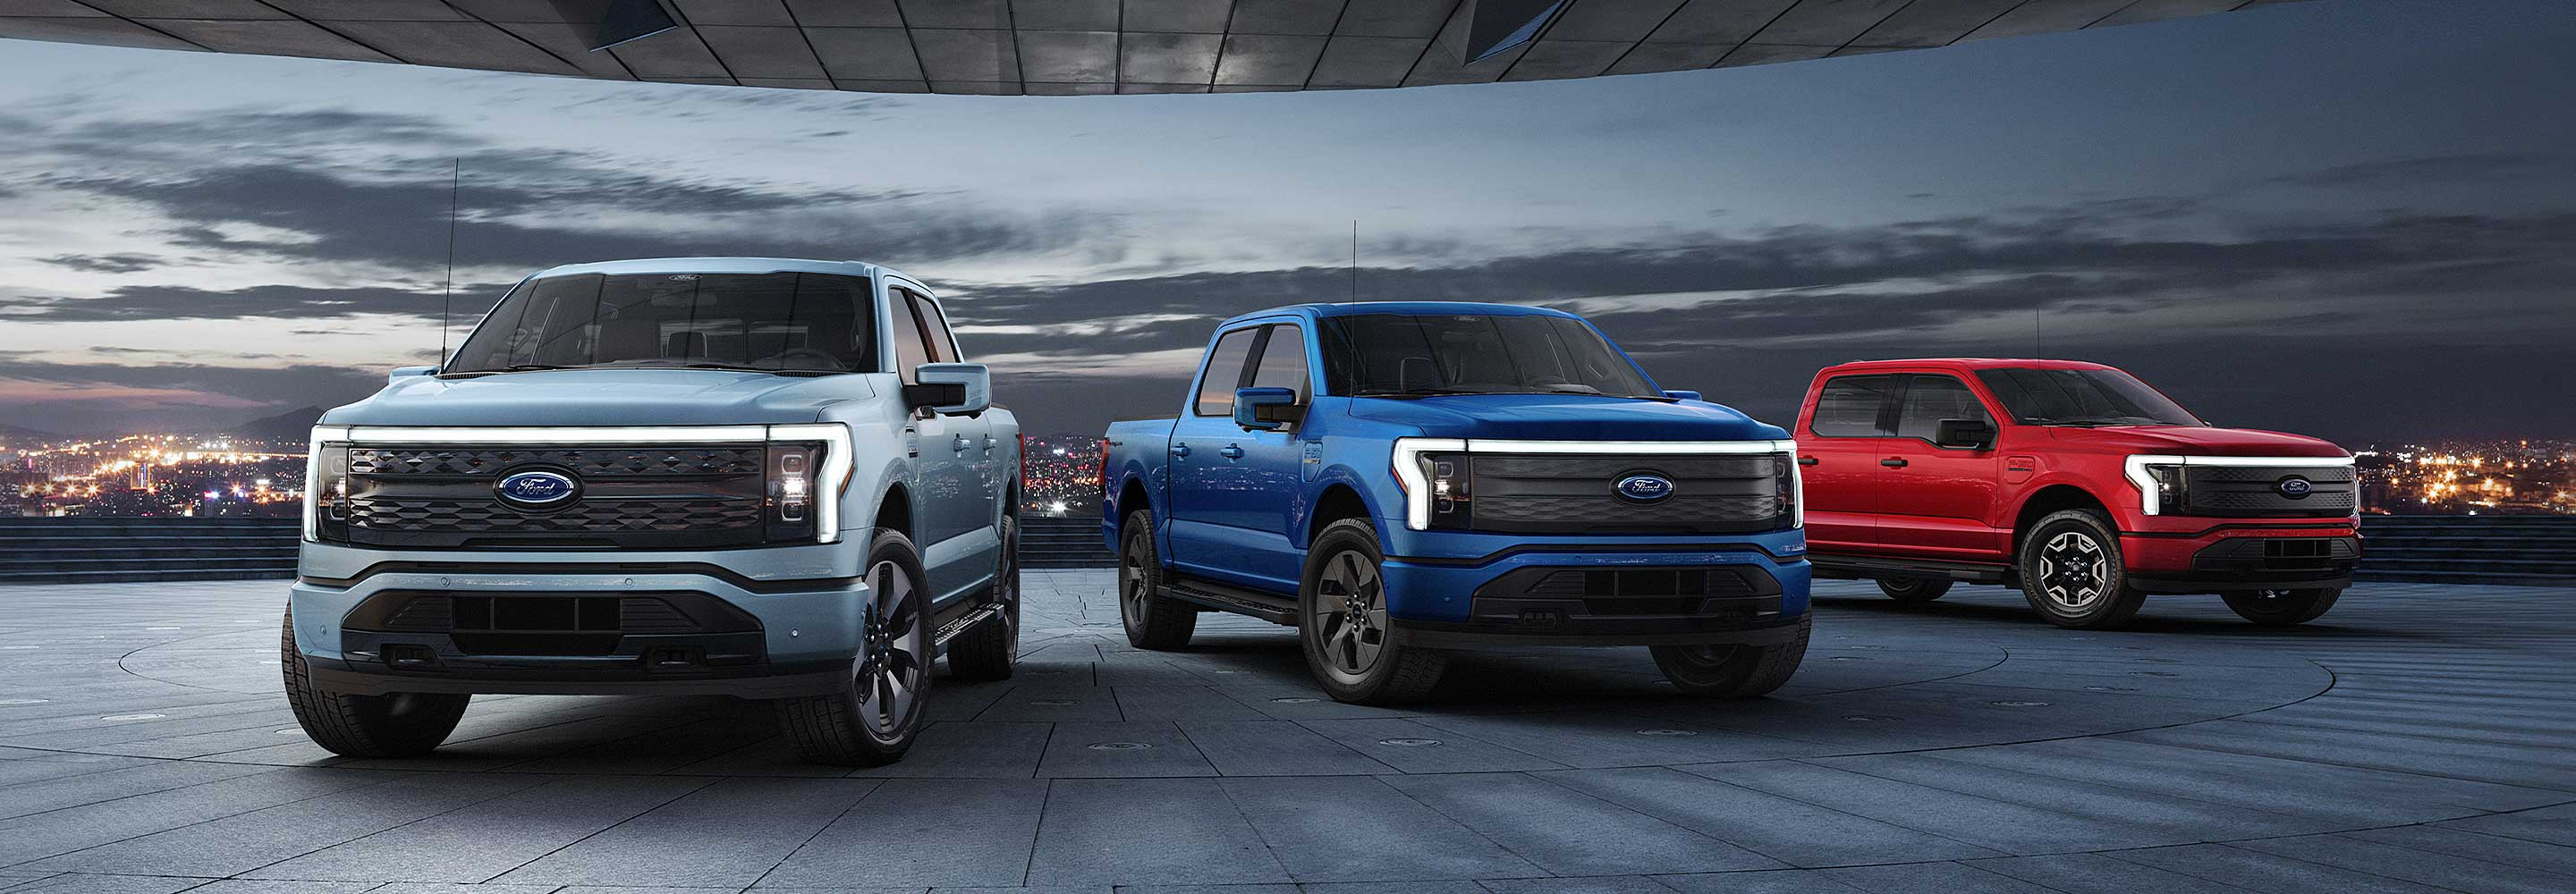 The All-New, All-Electric 2022 Ford F-150 Lightning